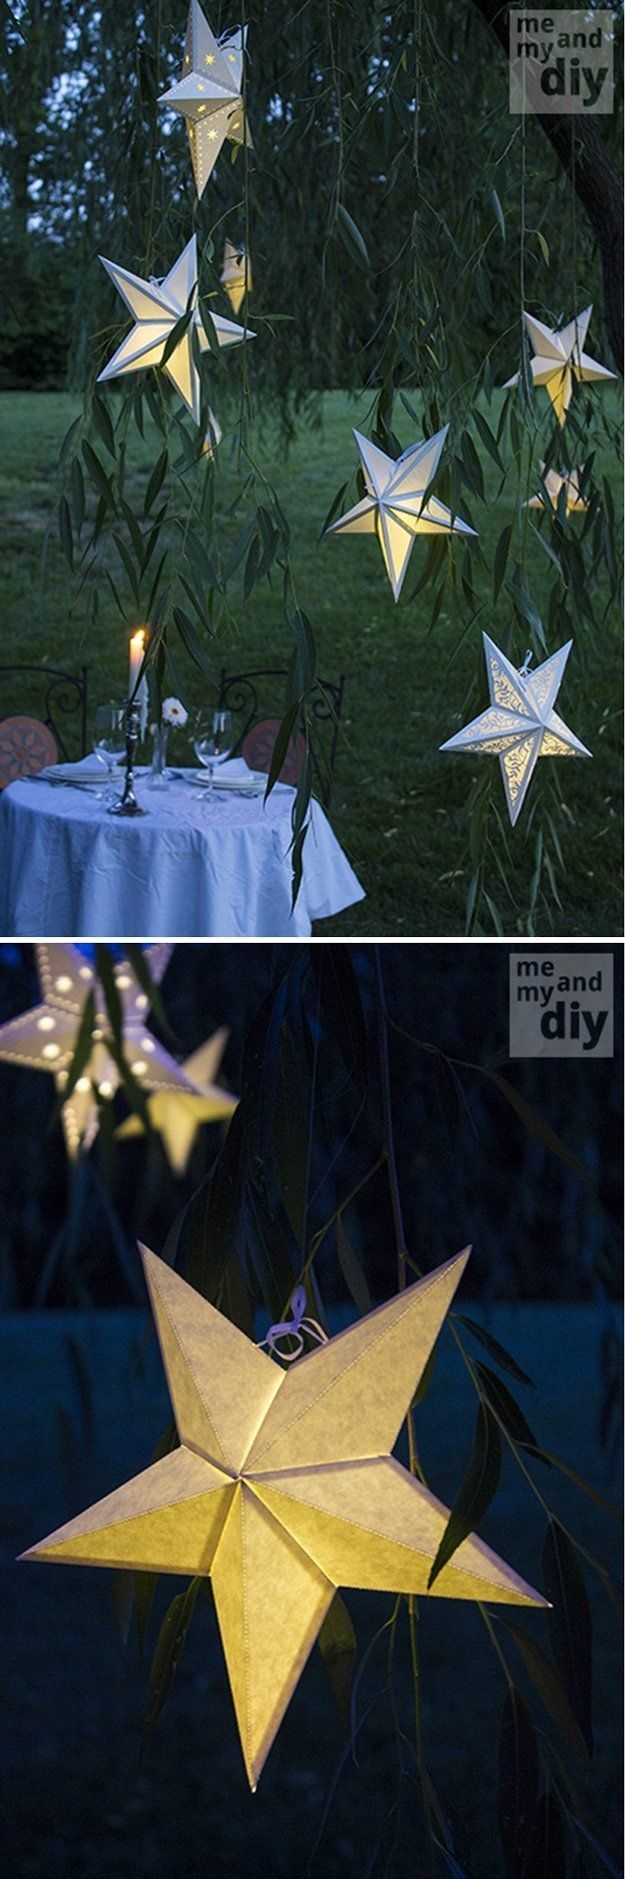 Paper Star Lanterns, Obvi Not Real Stars But Still #pretty | Quince Intended For Outdoor Hanging Star Lanterns (#14 of 15)